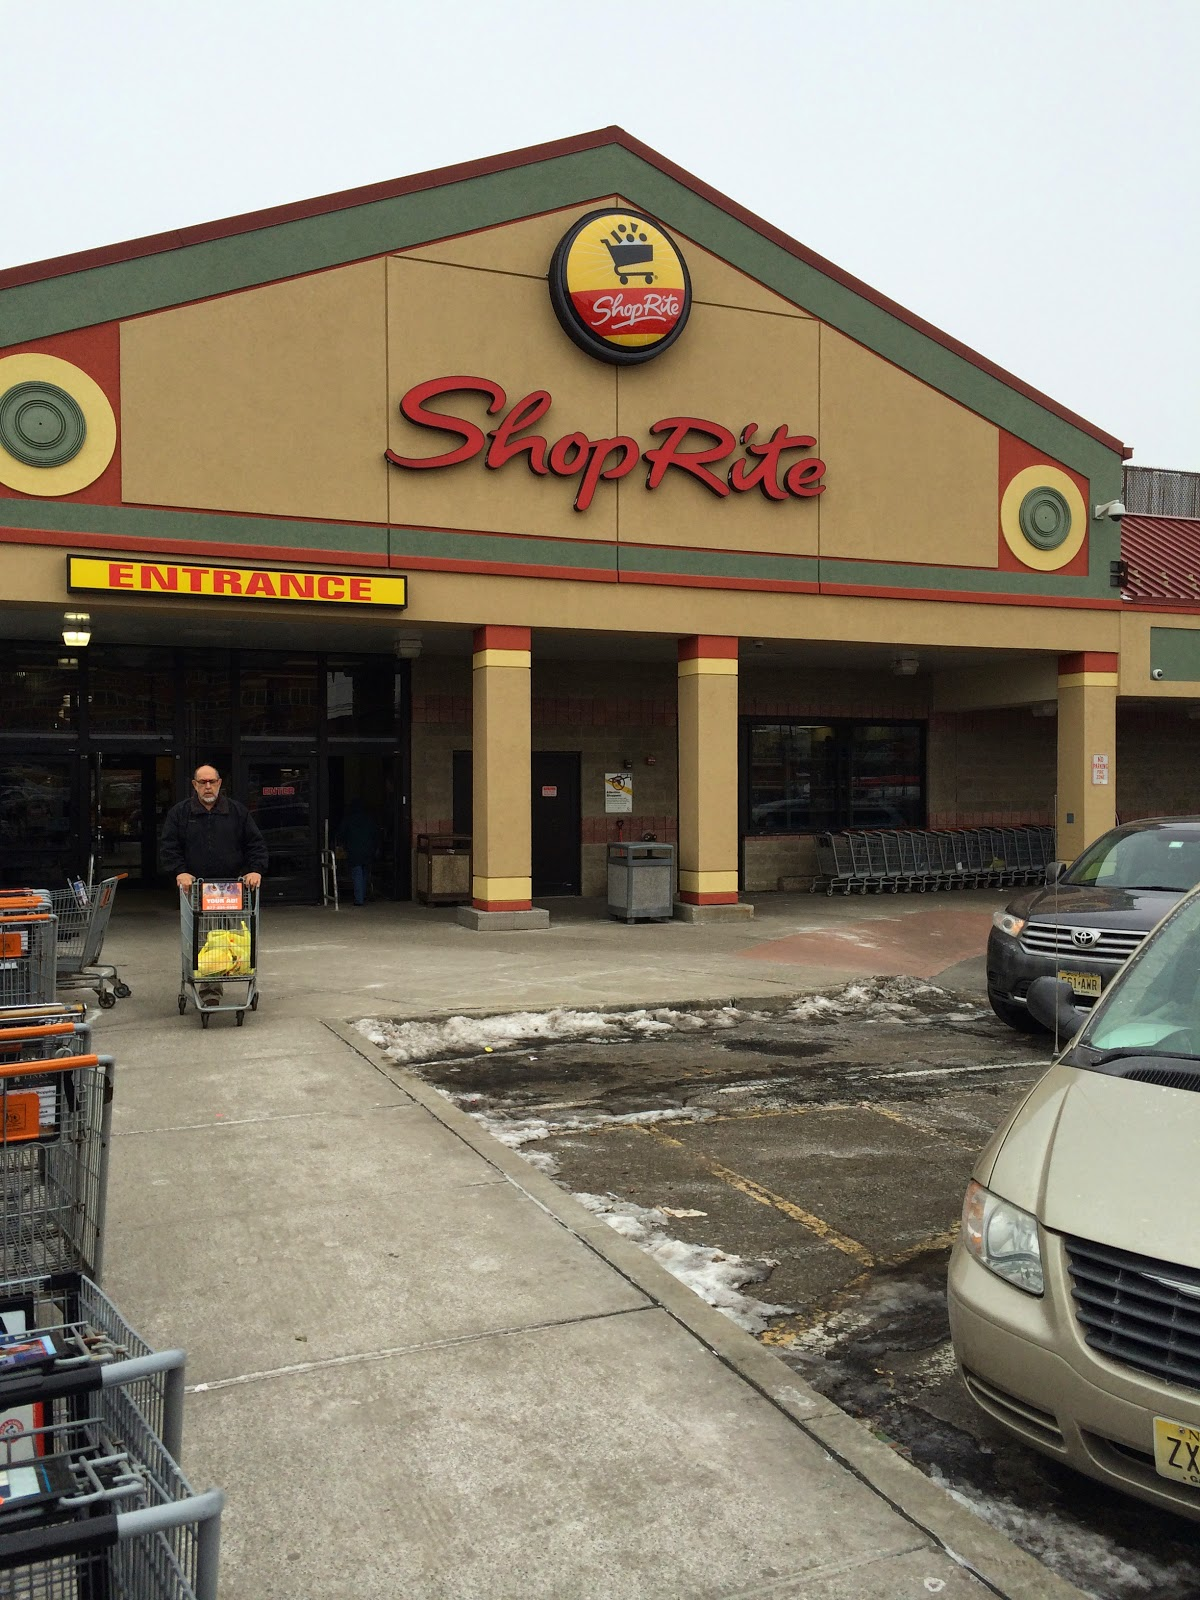 Shoprite can can sale 2015 - The Paramus Shoprite Is On The Way Home From My Gym And Closer To Me Than The Shoprite On South River Street In Hackensack